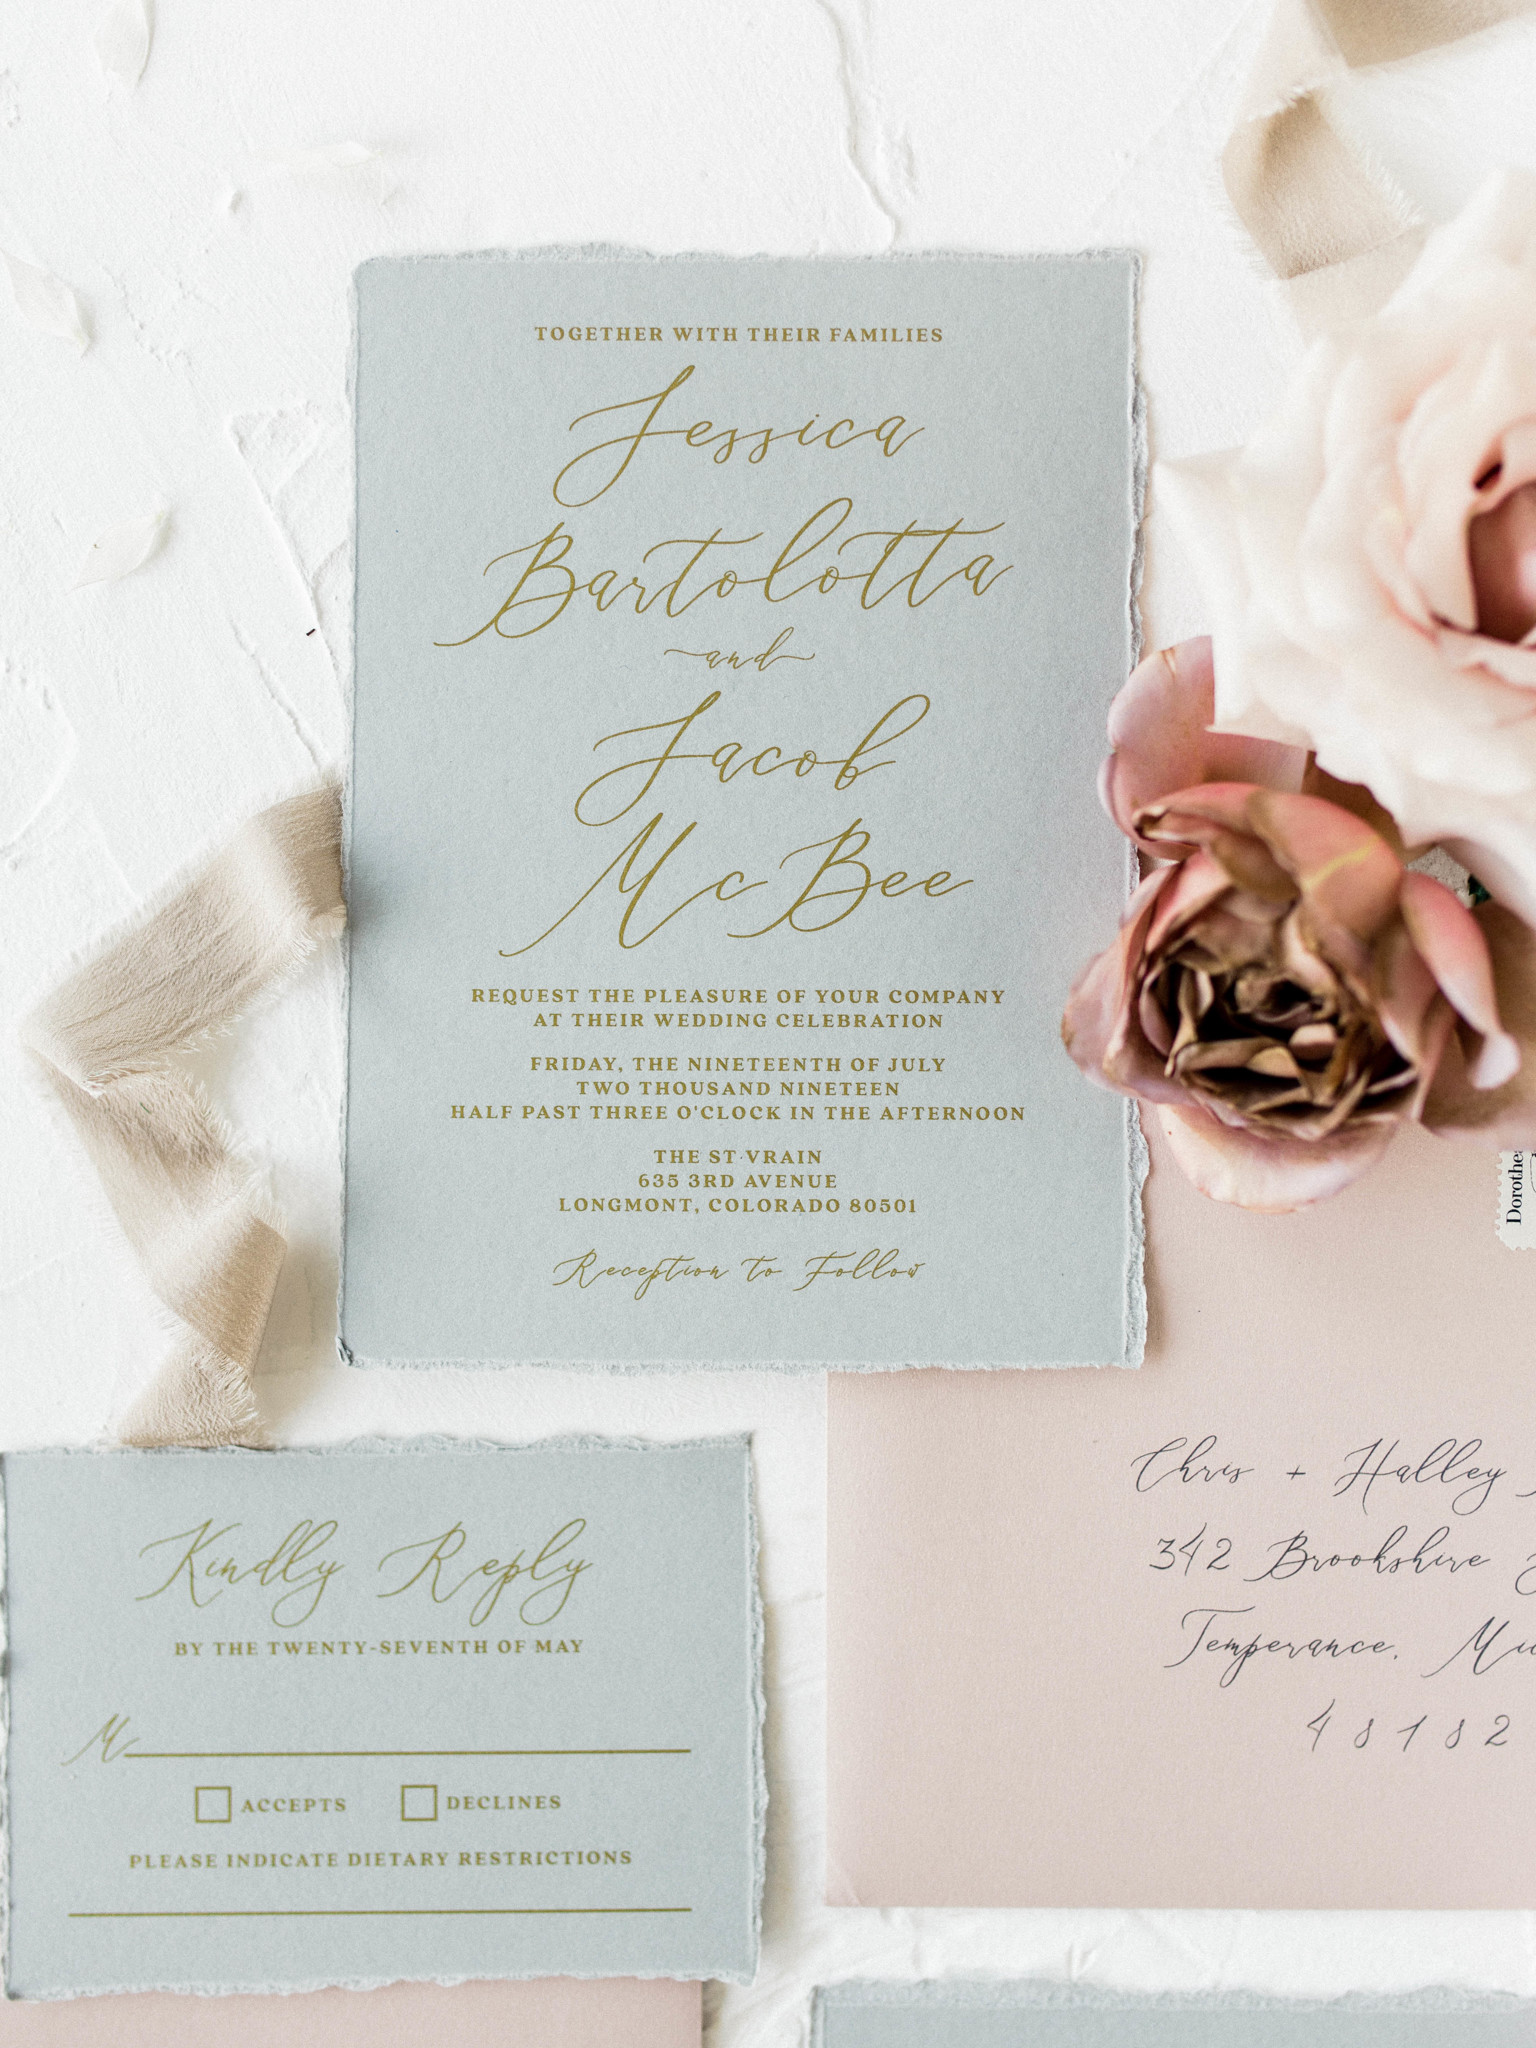 Wedding stationery fonts: Whimsical mauve wedding inspiration on Alexa Kay Events. See more romantic wedding ideas at alexakayevents.com!